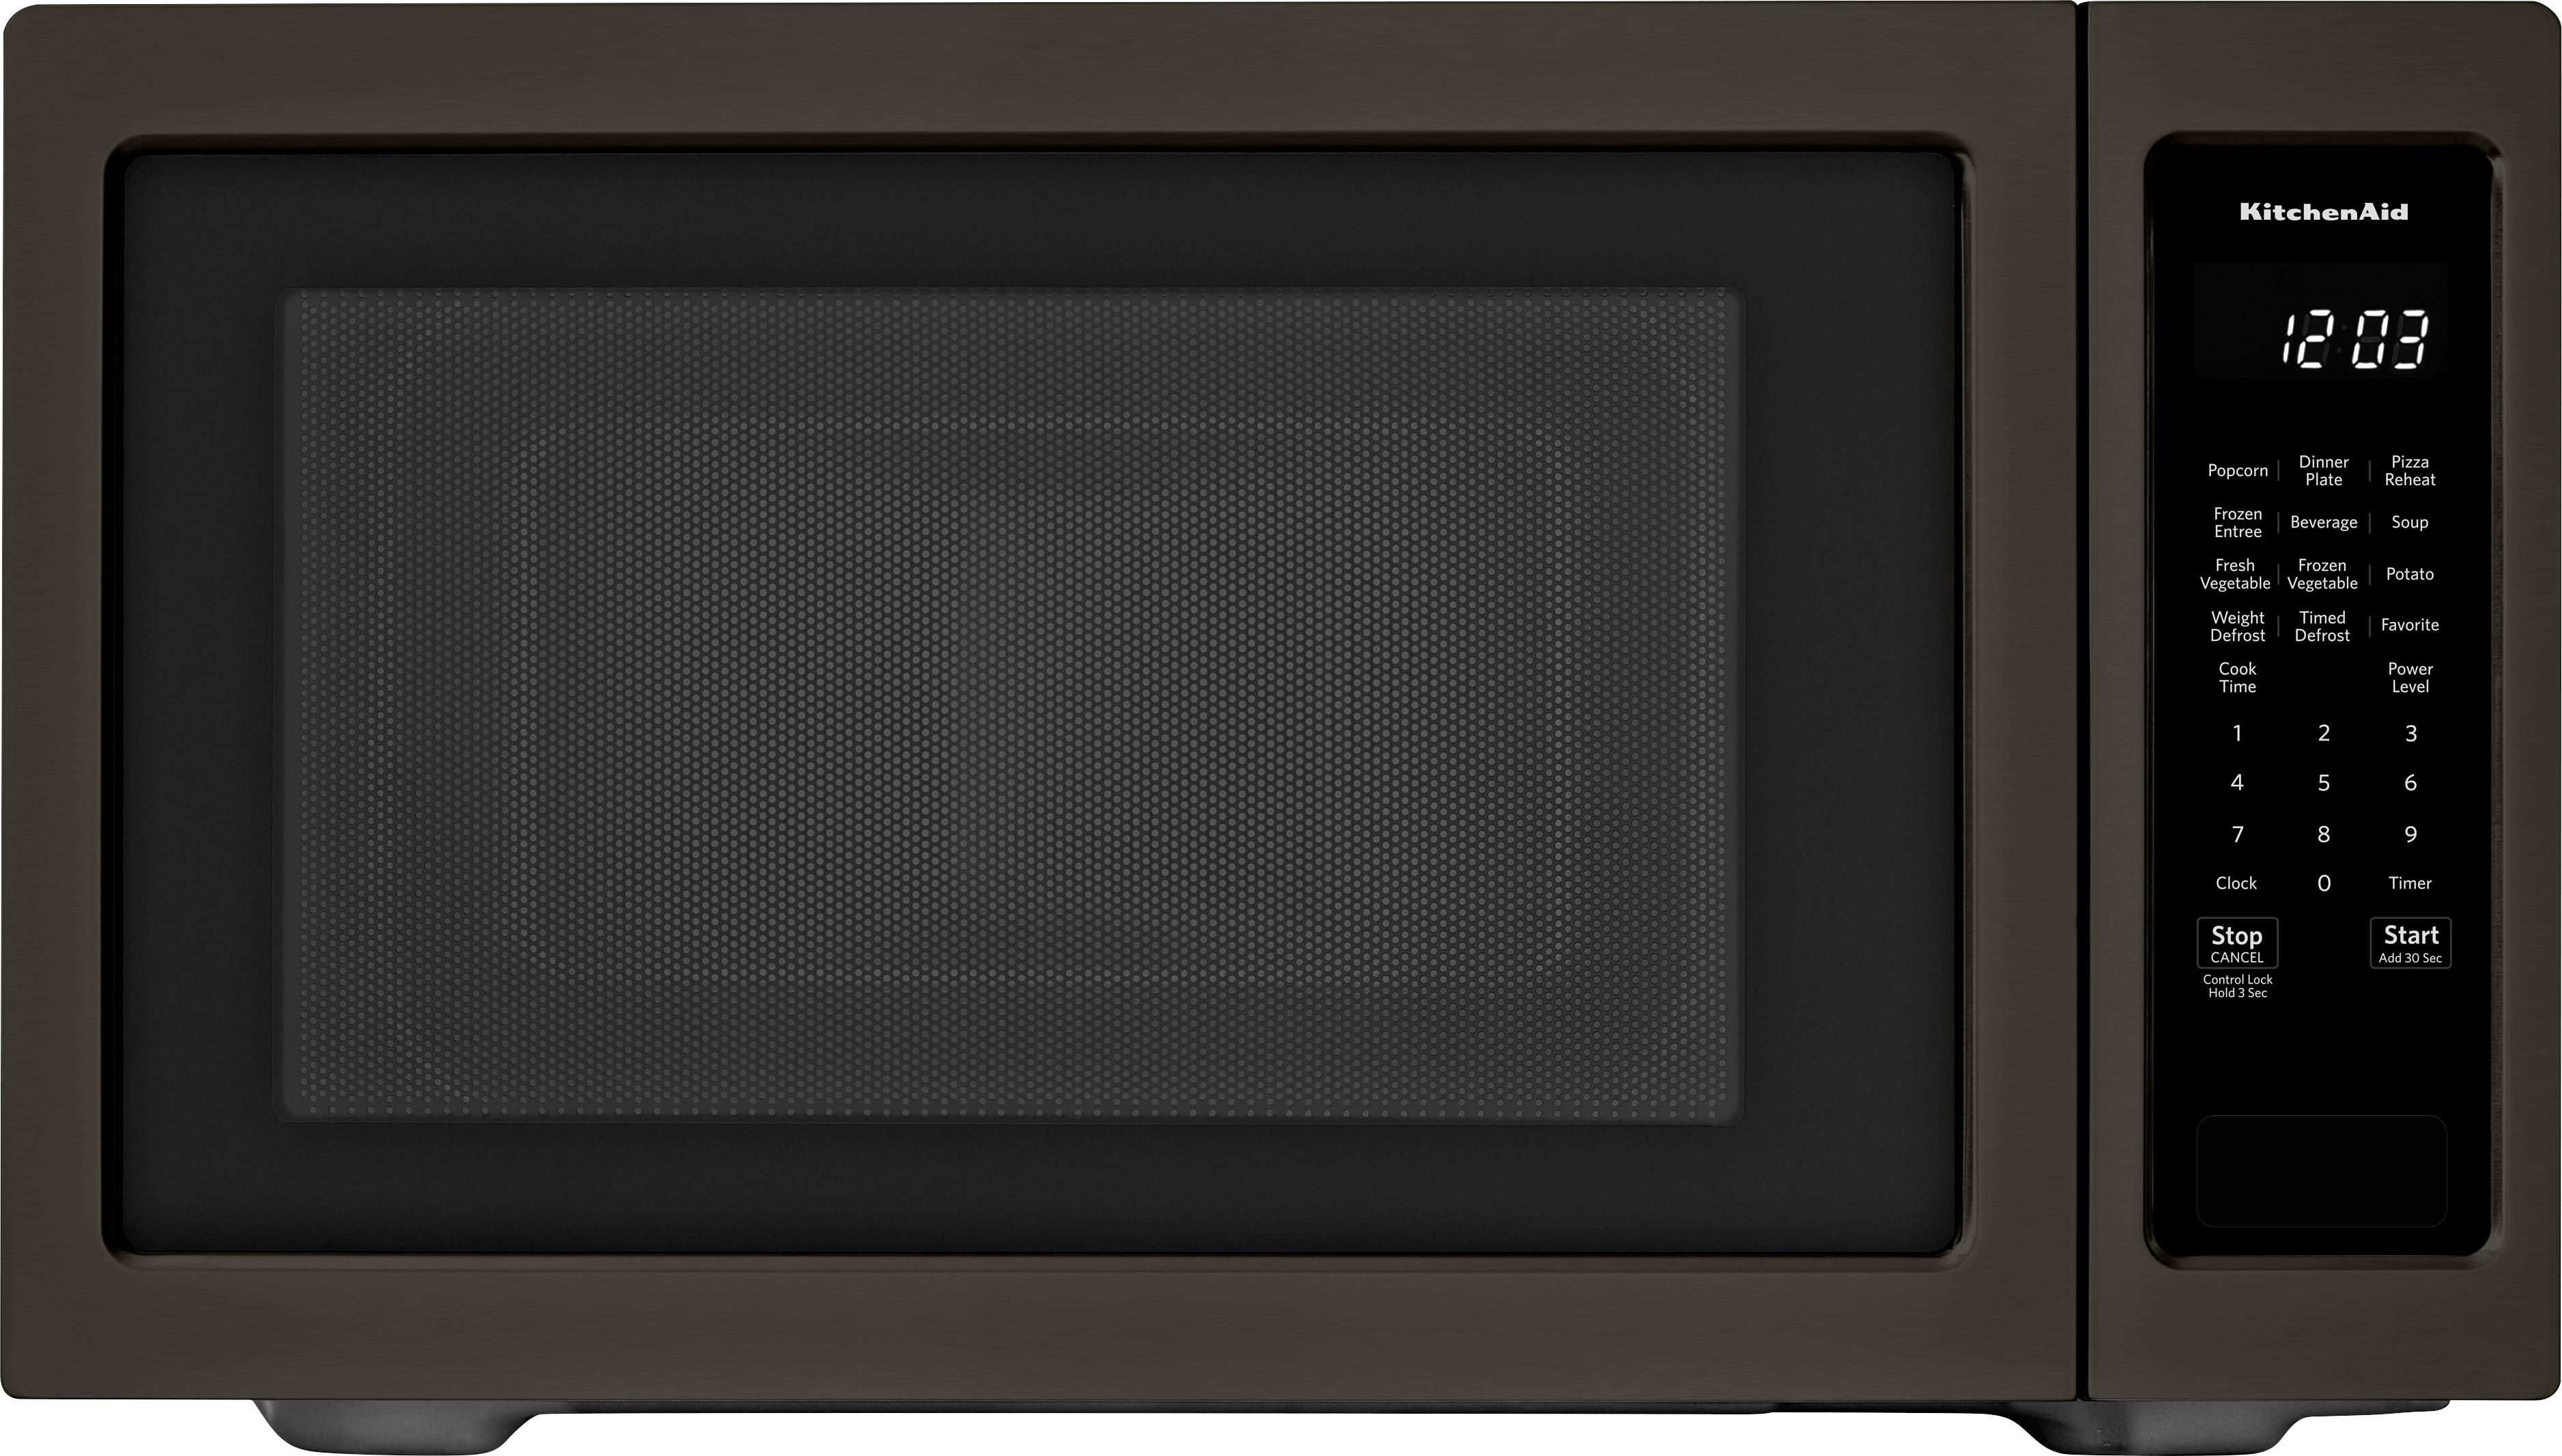 kitchenaid 2 2 cu ft microwave with sensor cooking black stainless steel